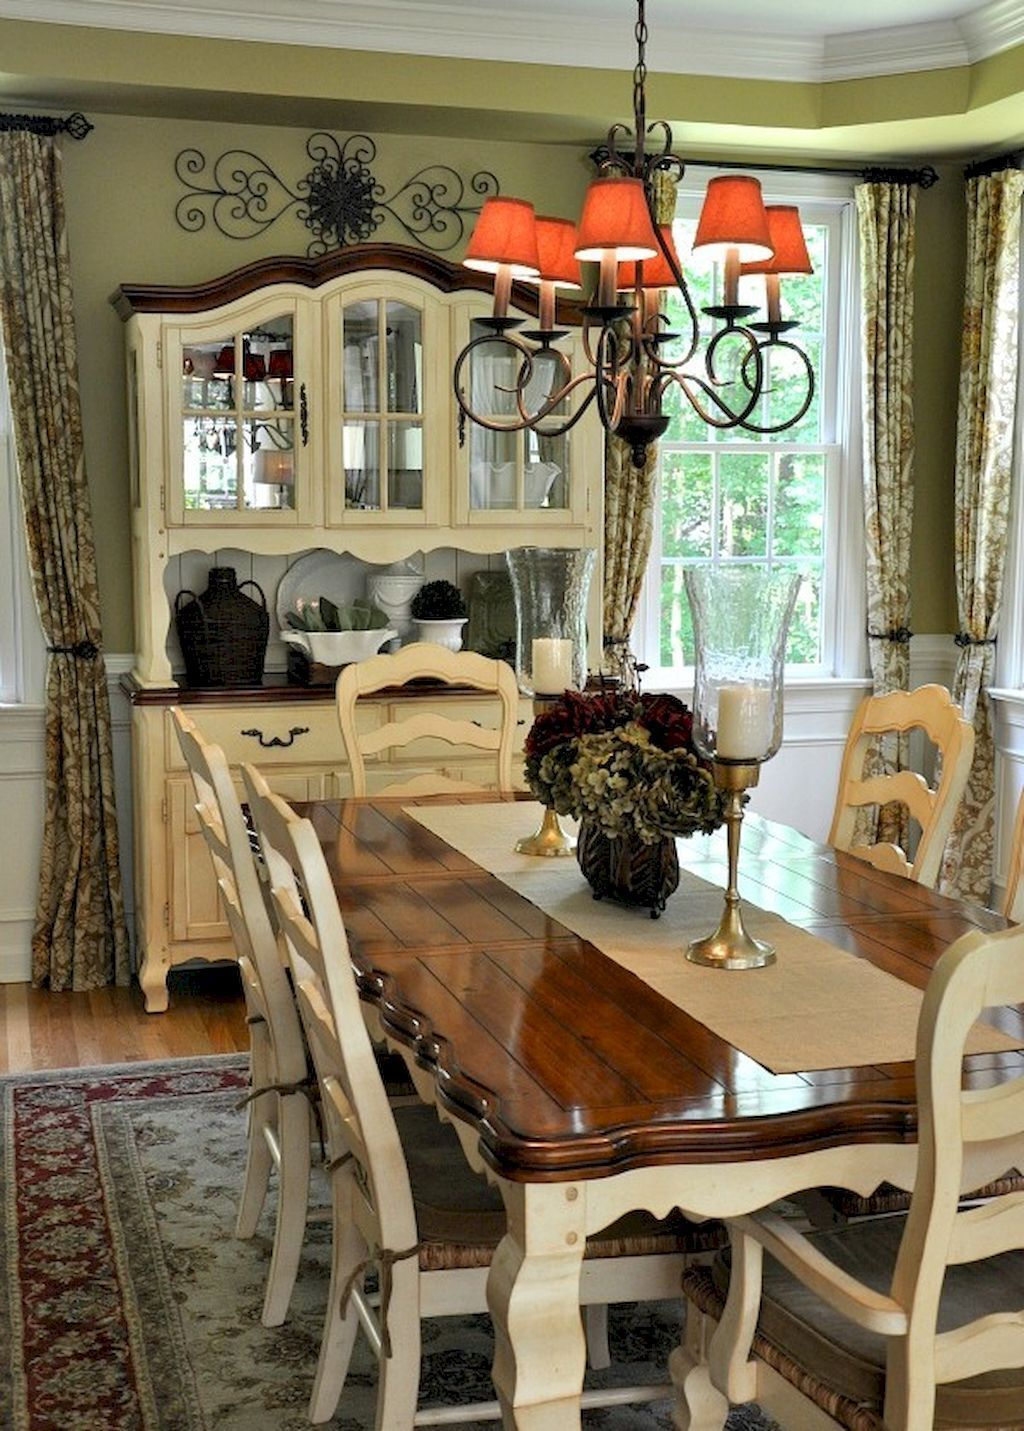 50 Beautiful French Country Dining Room Design and Decor Ideas images